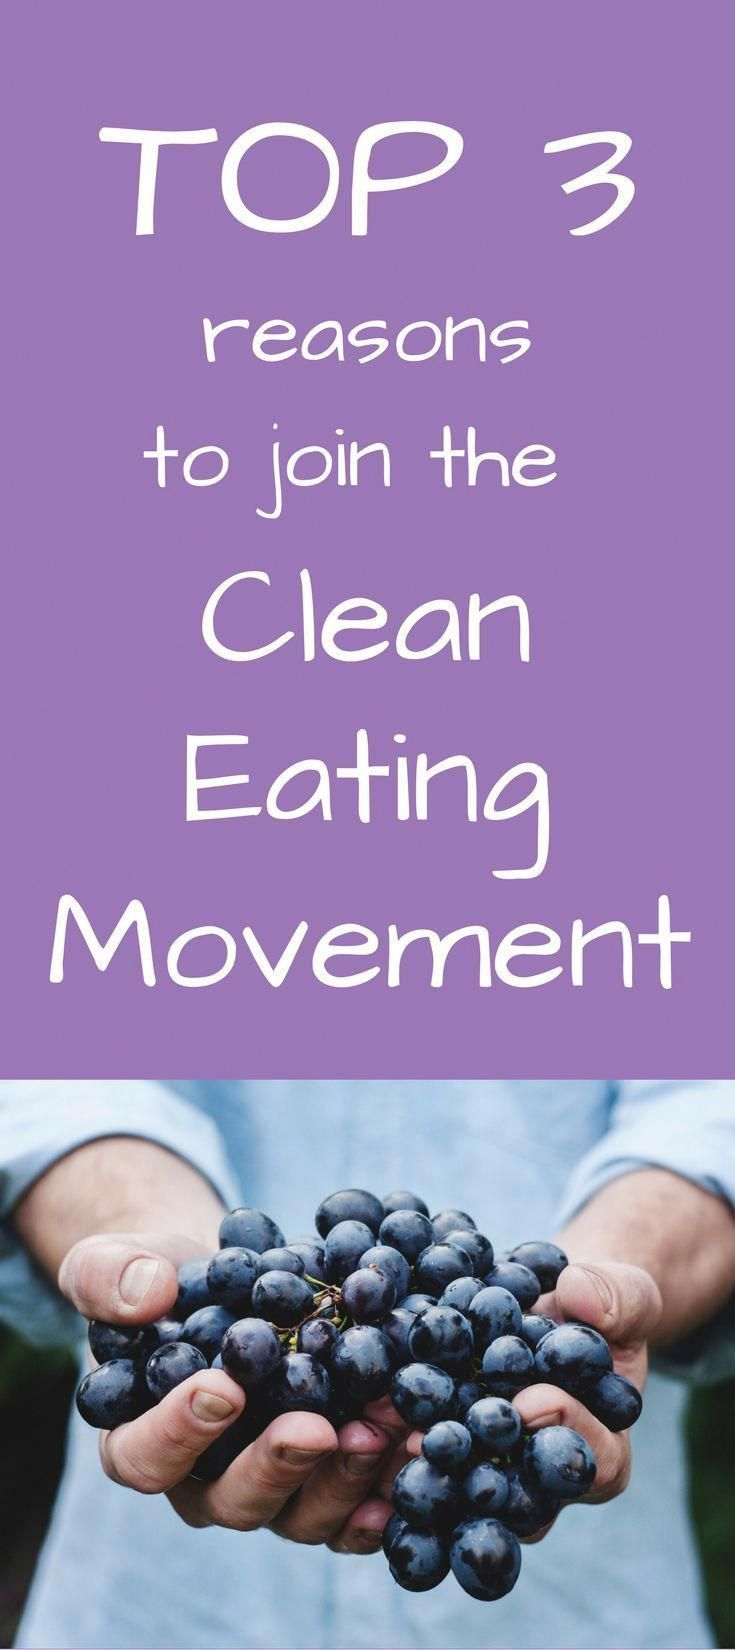 Top 3 reasons to join the clean eating movement! This health post touches on clean eating for beginners, clean eating tips, easy weightloss motivation... - #clean #eating #health #movement #reasons #touches - #new #cleaneatingforbeginners